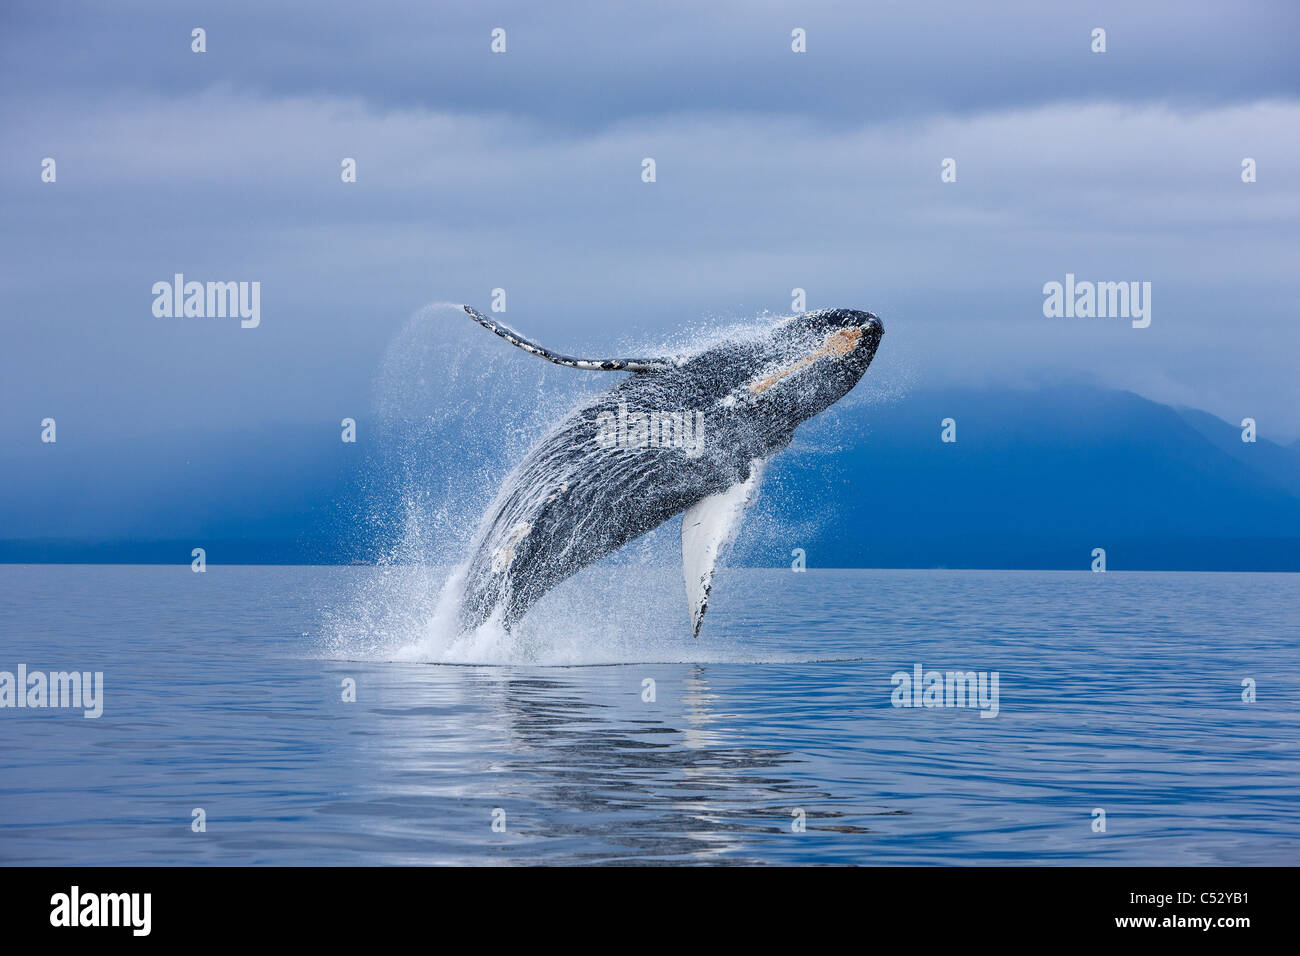 A Humpback whale breaches along the shoreline of Chichagof Island in Chatham Strait, Inside Passage,  Alaska. COMPOSITE - Stock Image